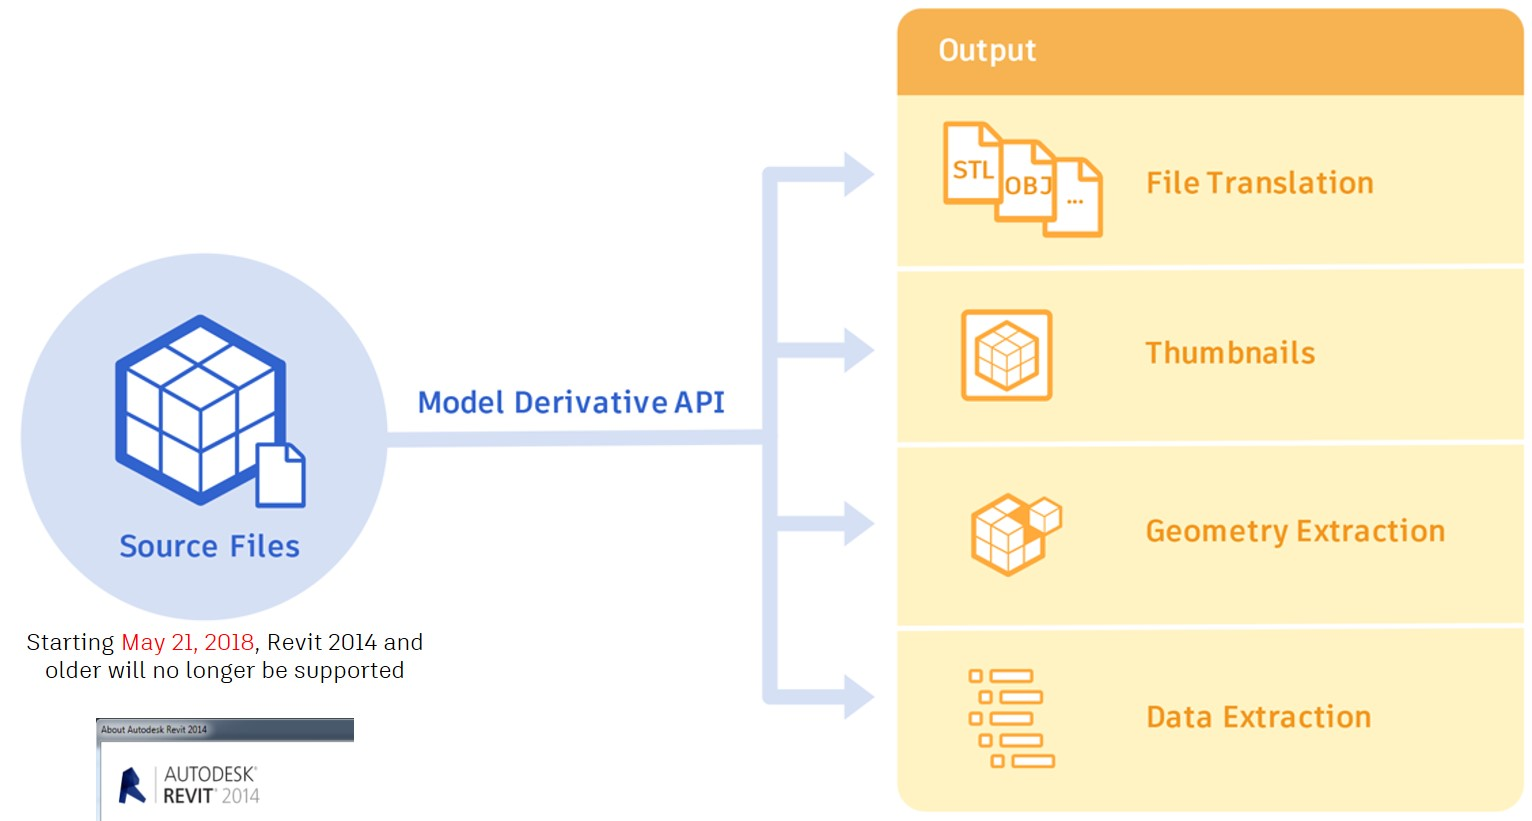 Model Derivative API will no longer support Revit 2014 and older starting May 21.